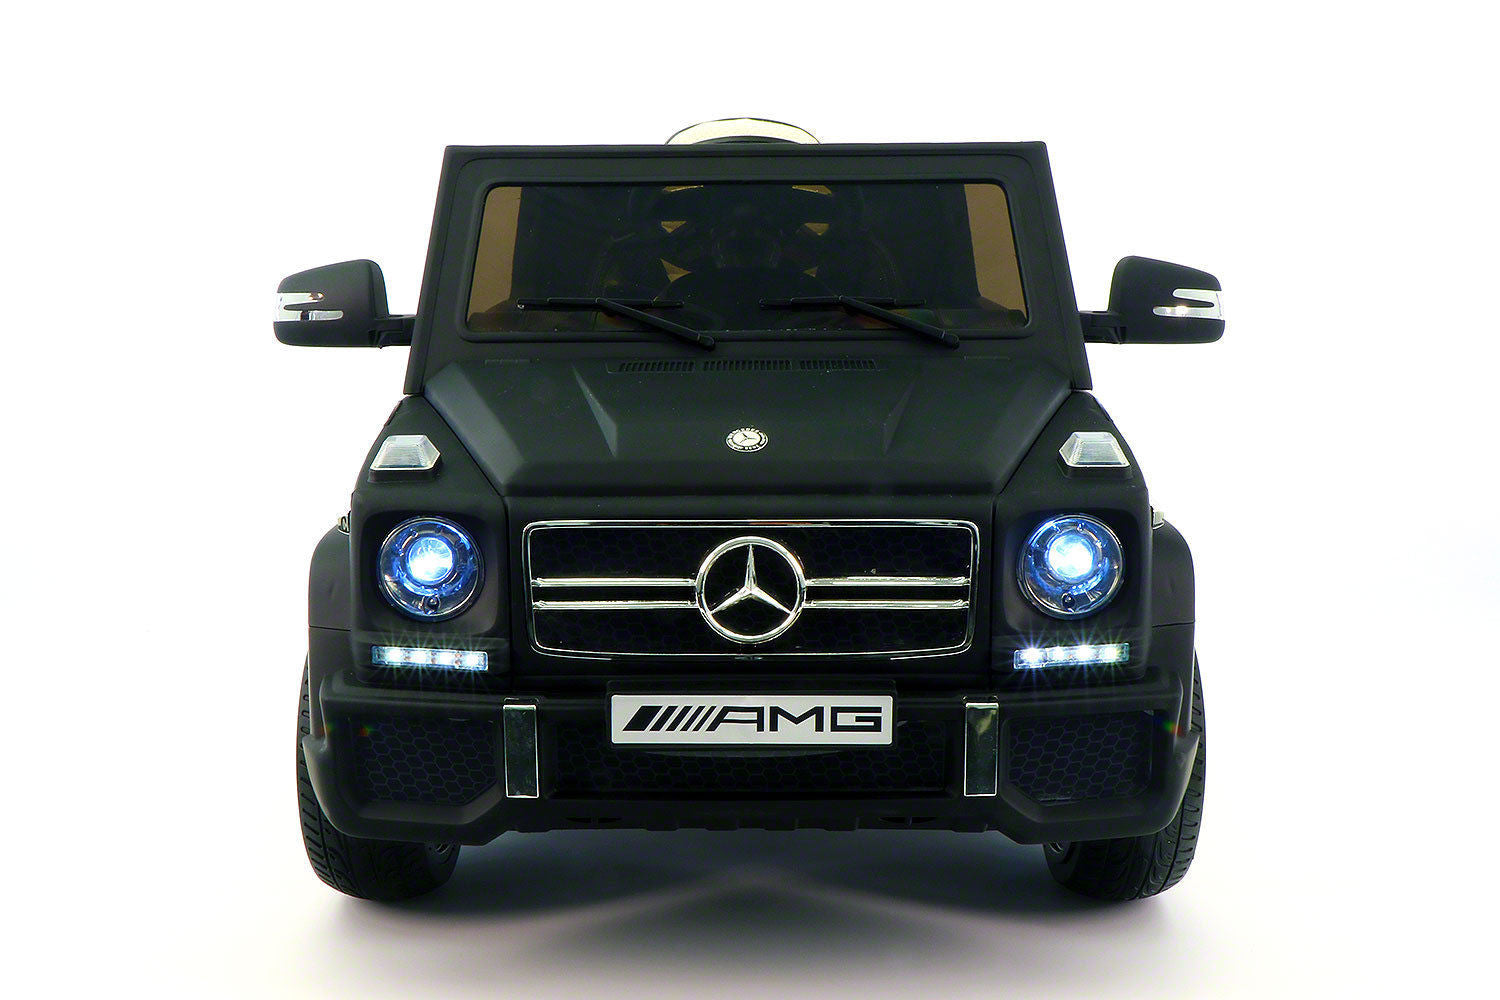 mercedes benz g65 amg 12v battery powered ride on toy car. Black Bedroom Furniture Sets. Home Design Ideas